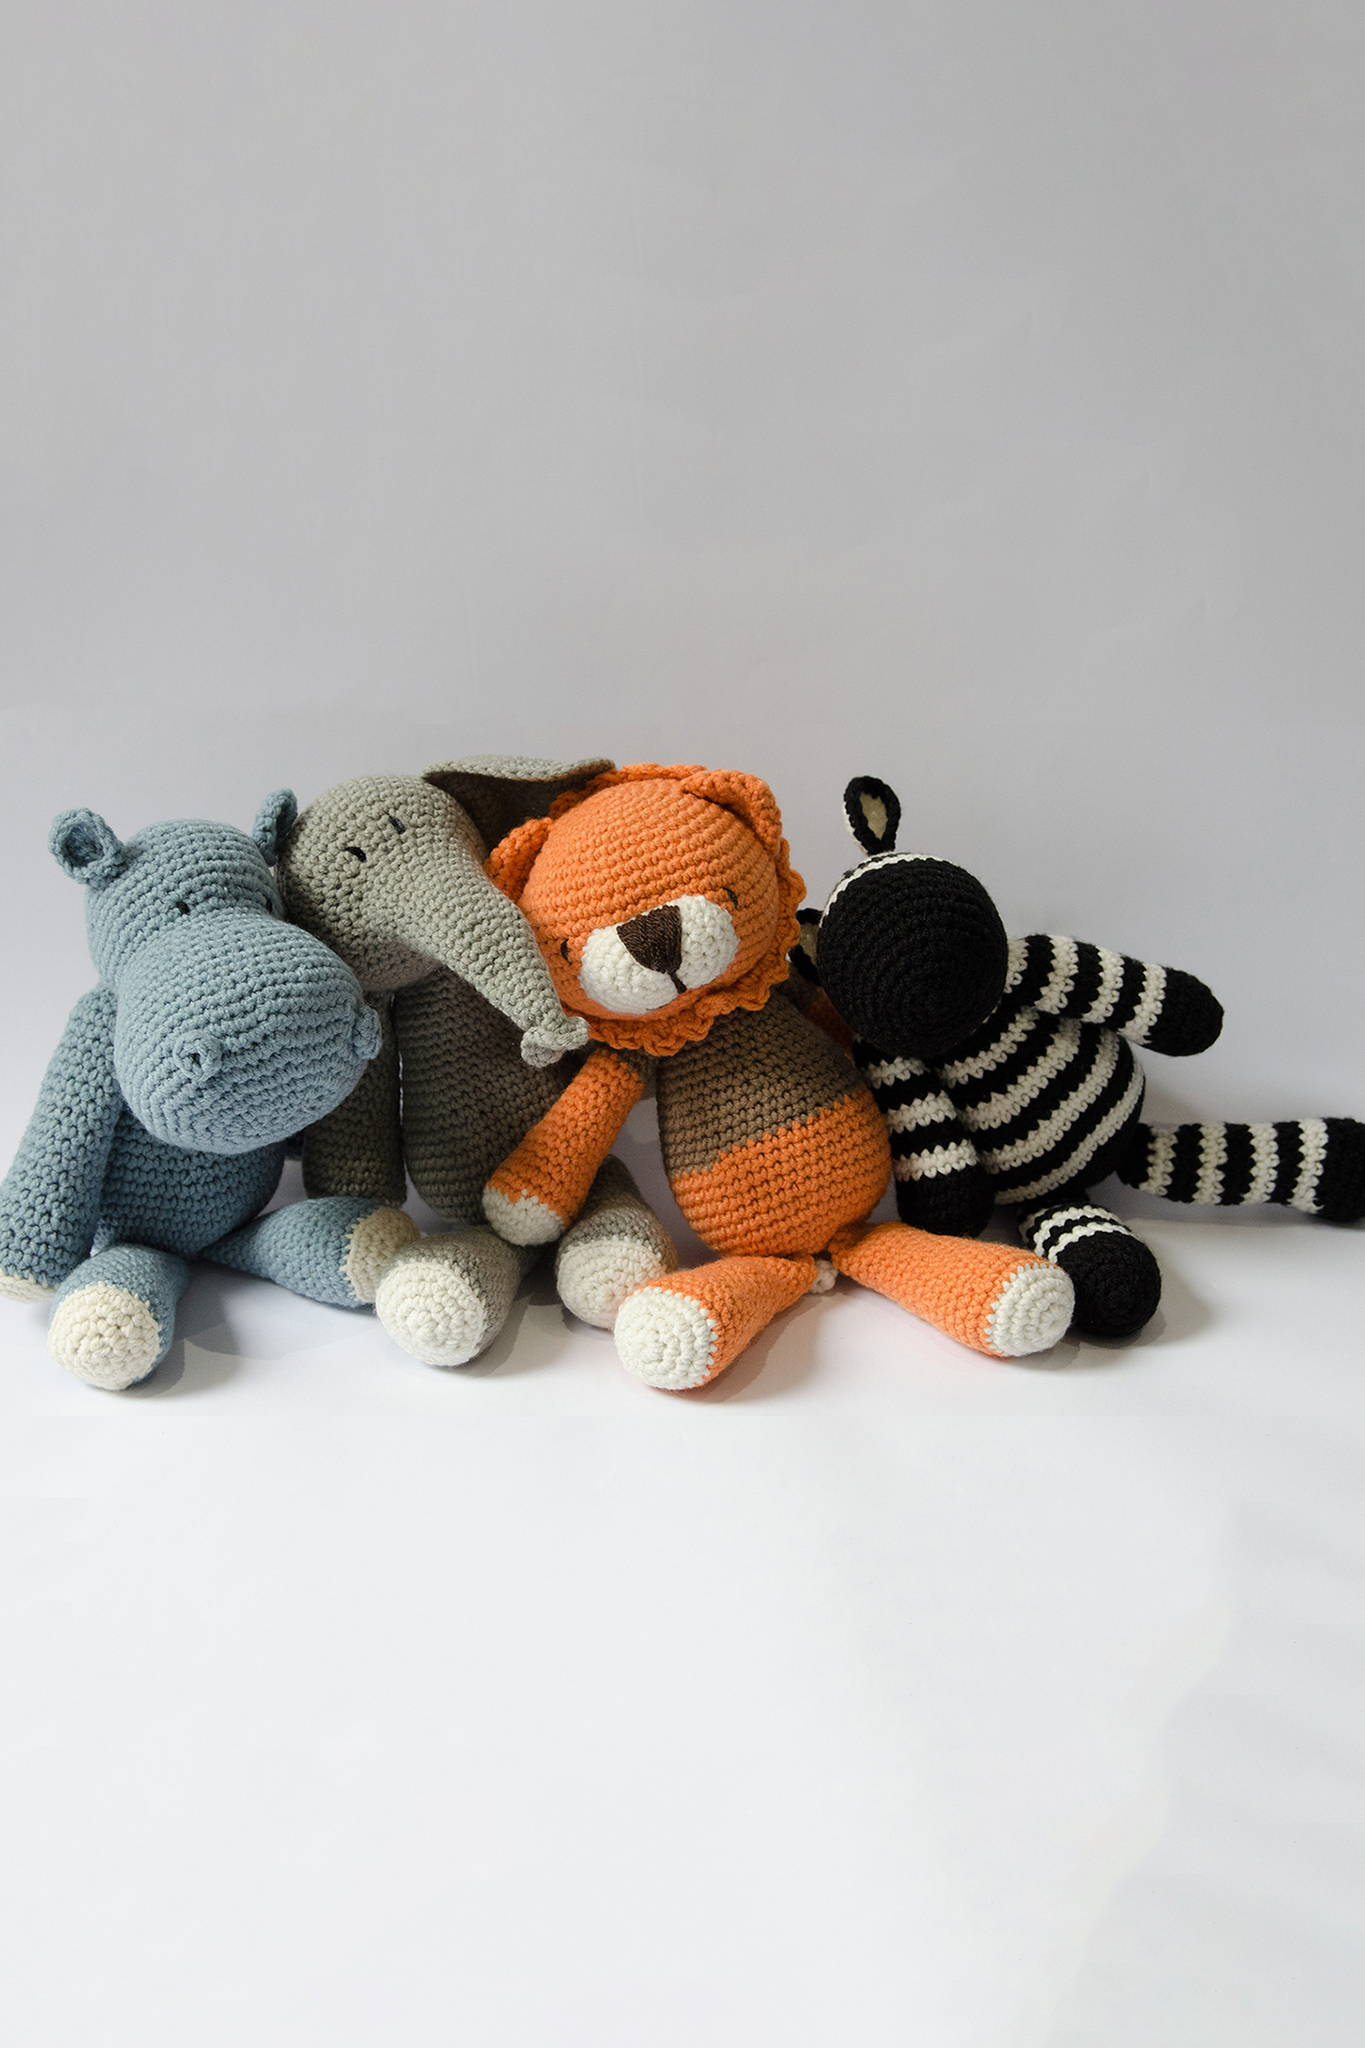 SAVANNAH CROCHETED ANIMALS Crocheted animals. All cuddle, no bite. 54kibo exclusive